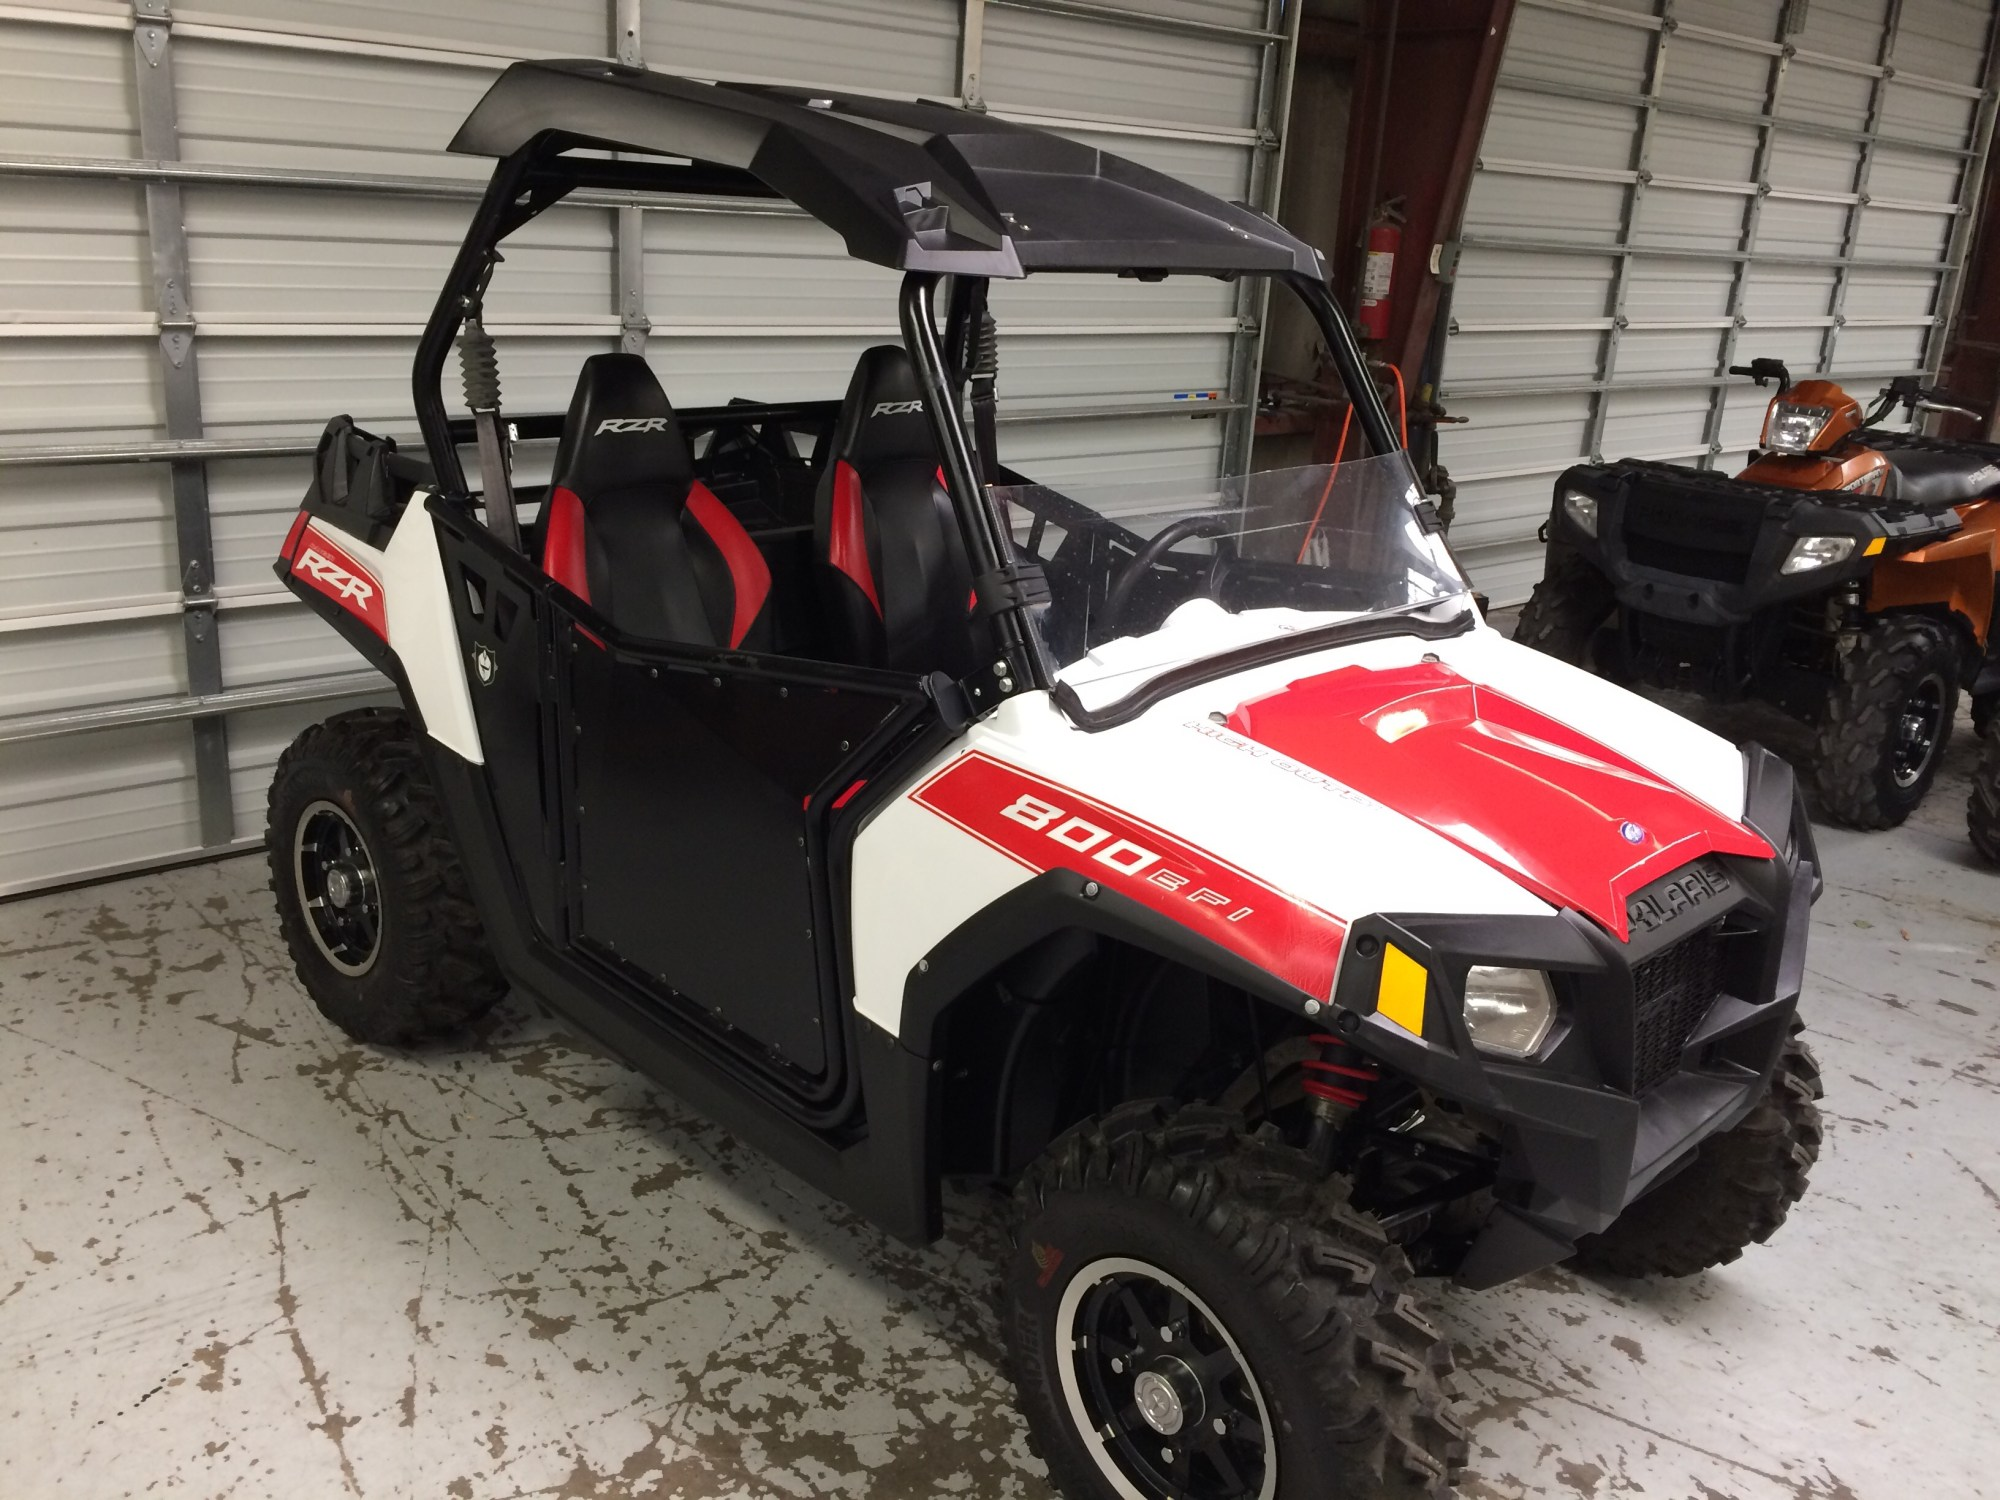 hight resolution of 2012 polaris rzr 800 limited edition 50 trail pro armor doors 3800 miles new tires very clean 8500